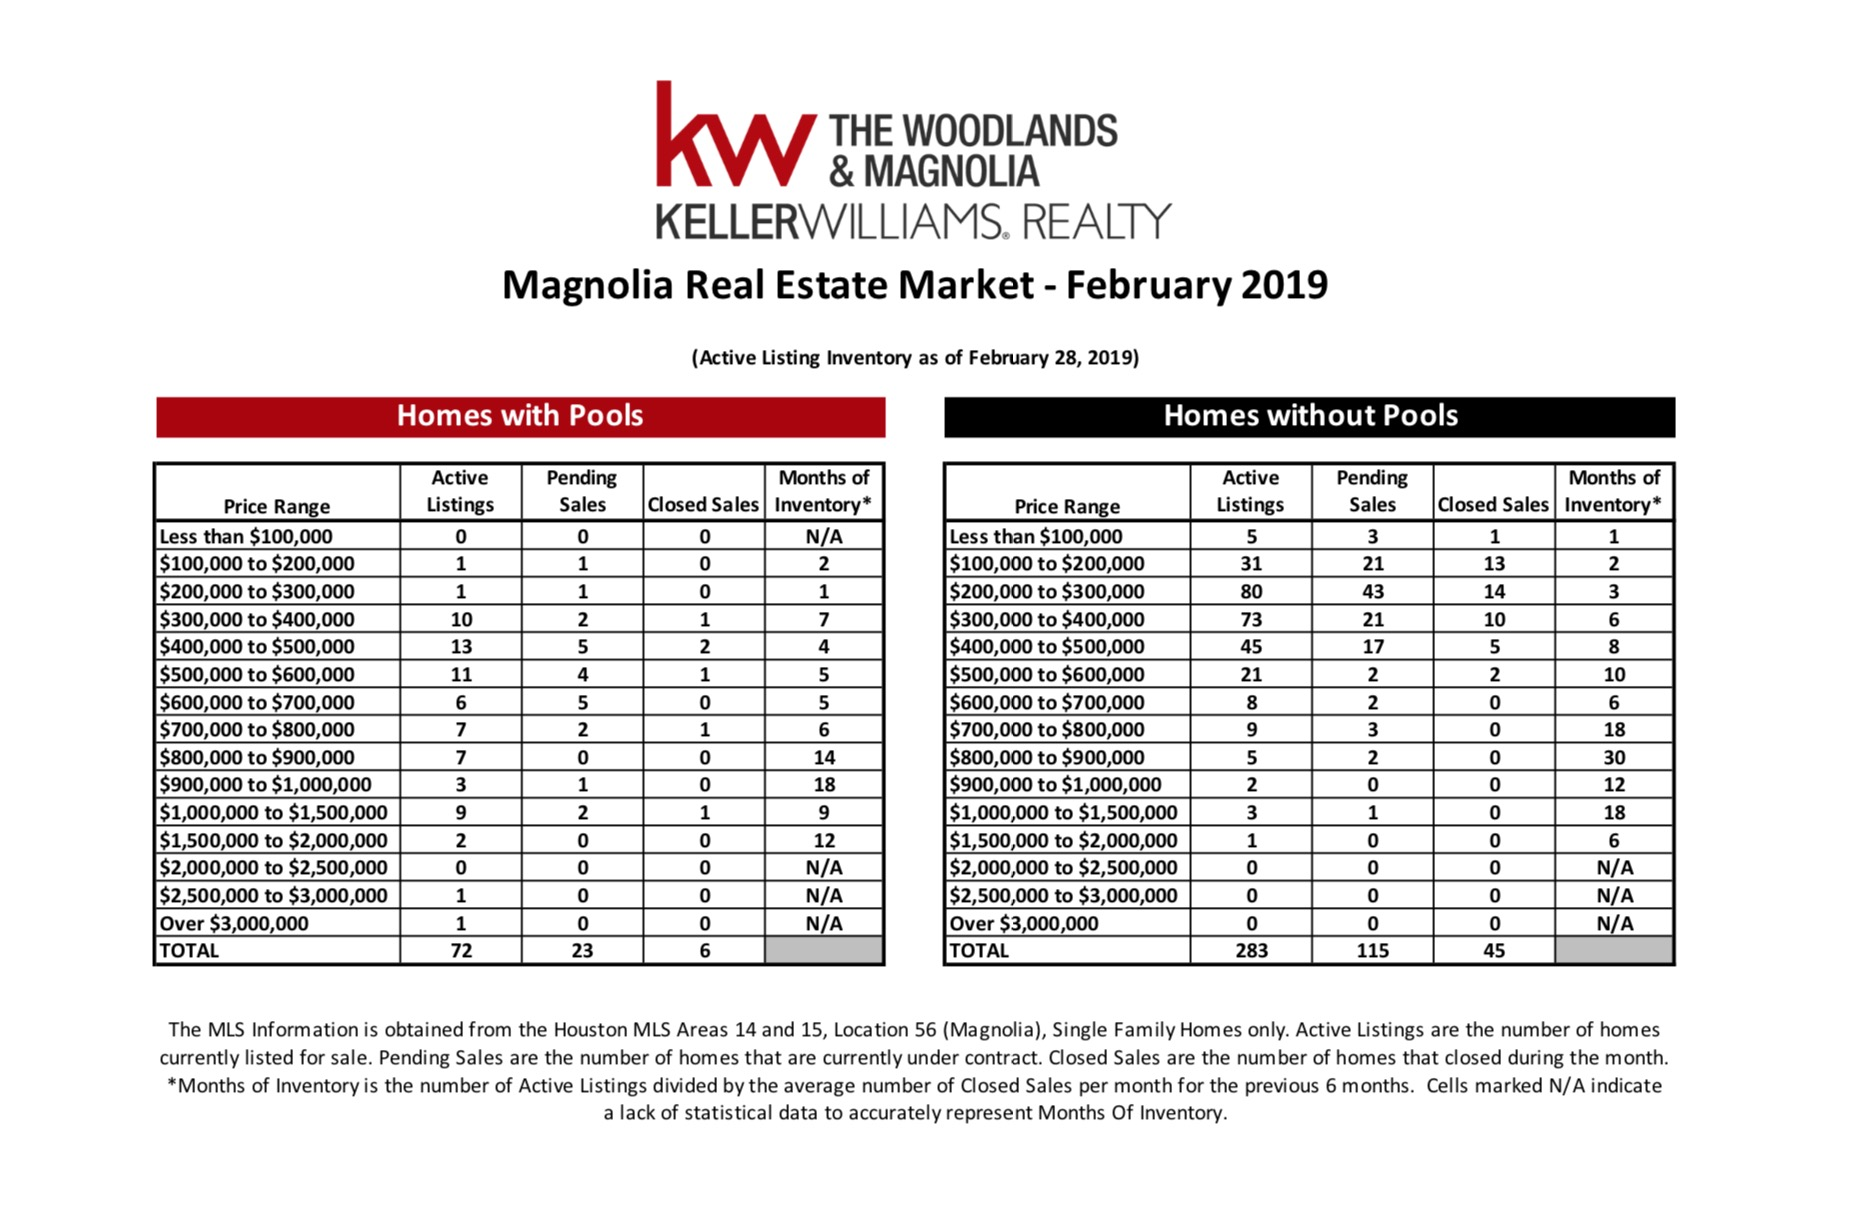 , February 2019 MarketWatch Report – Magnolia, KW Woodlands, KW Woodlands